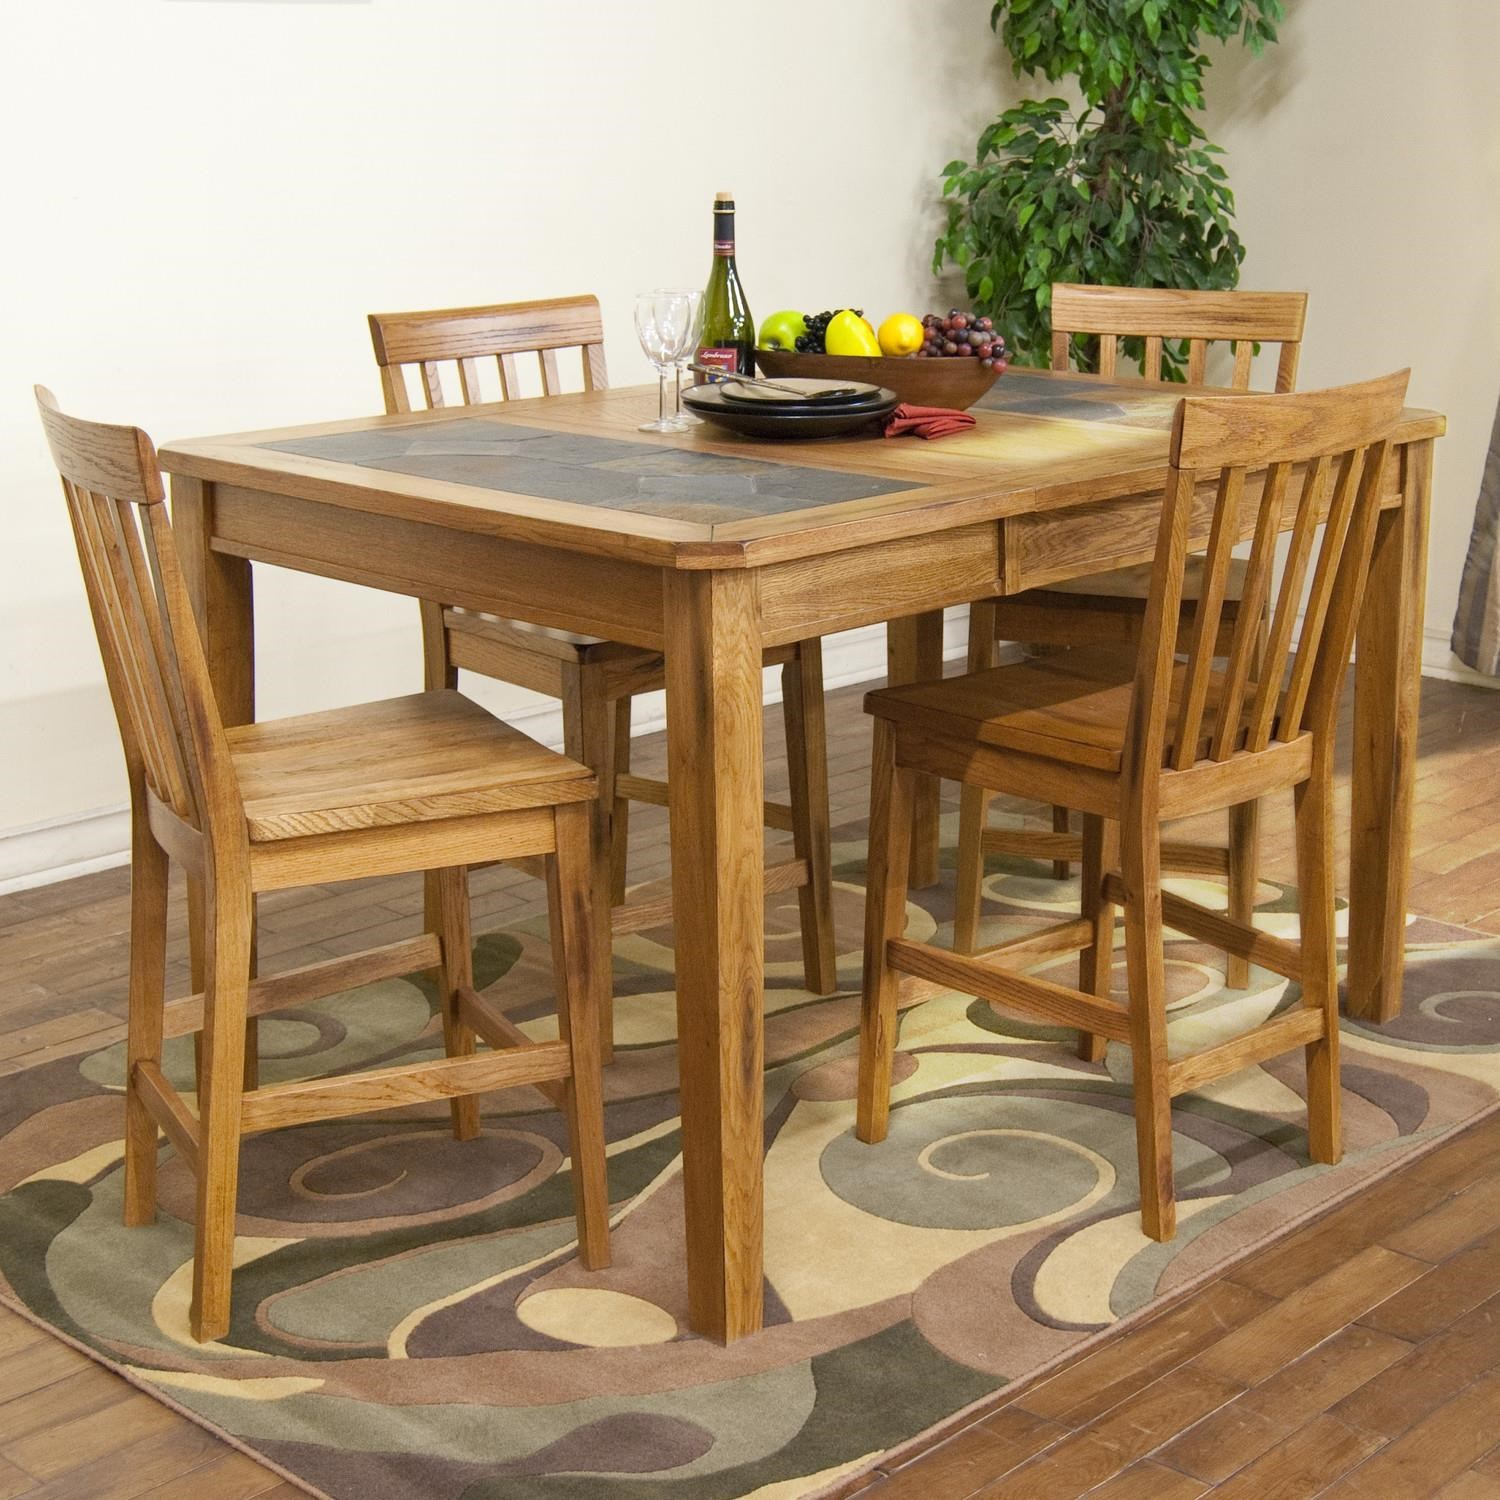 Sedona Counter Height Extension Table w/ Slate Top u0026 Stool Set by Sunny Designs  sc 1 st  John V Schultz Furniture : slate top dining table set - pezcame.com